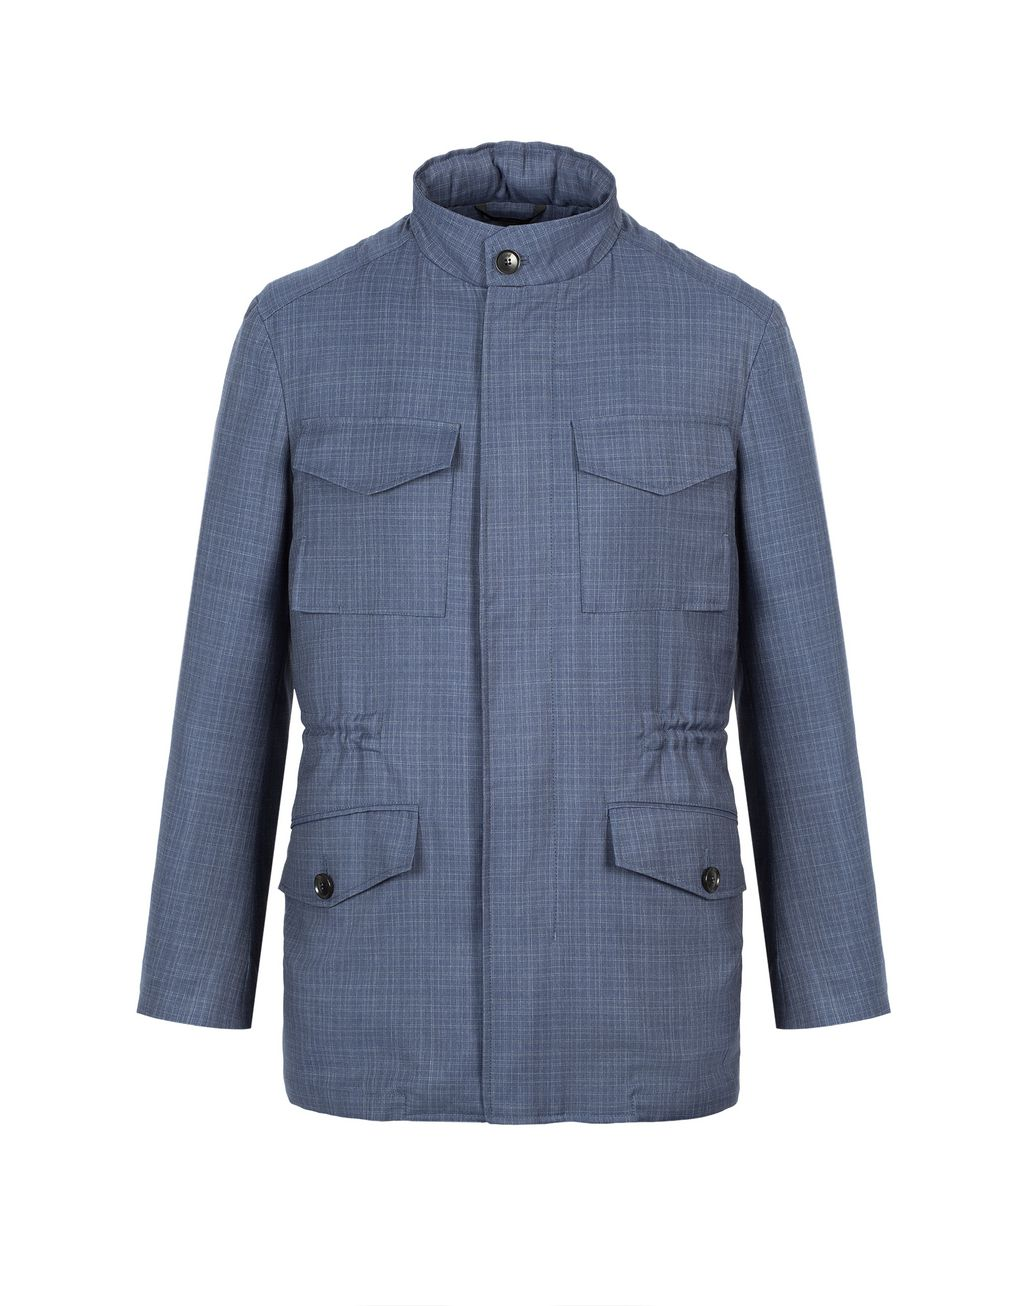 BRIONI Navy-Blue Check Trans-Seasonal Field Jacket Outerwear U f